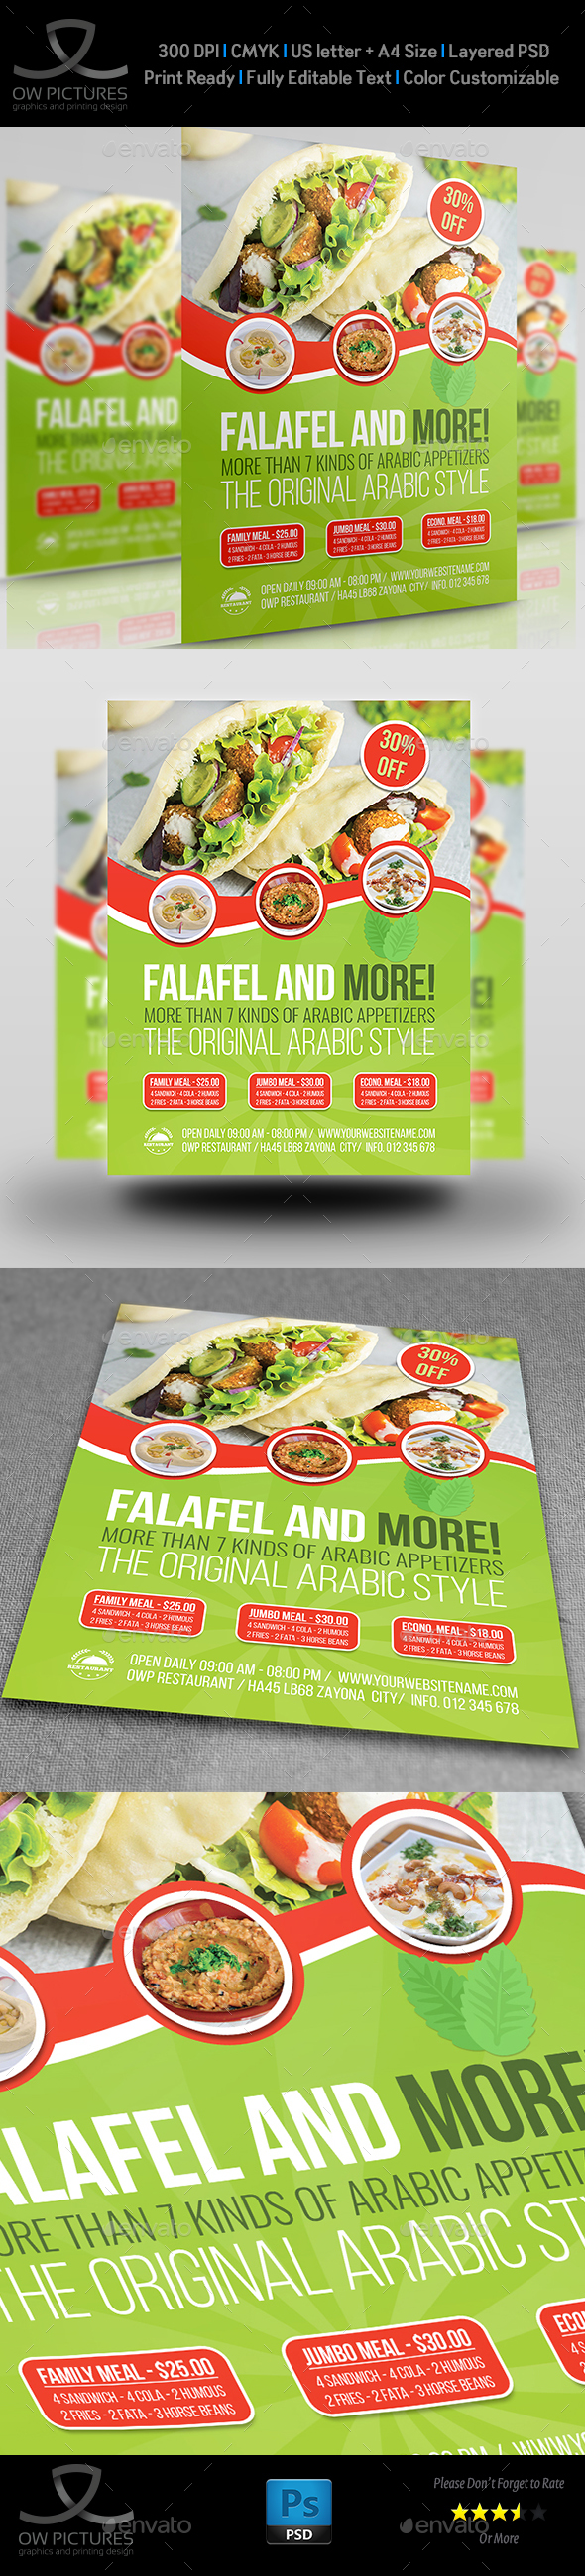 Restaurant Flyer Template Vol.15 - Restaurant Flyers